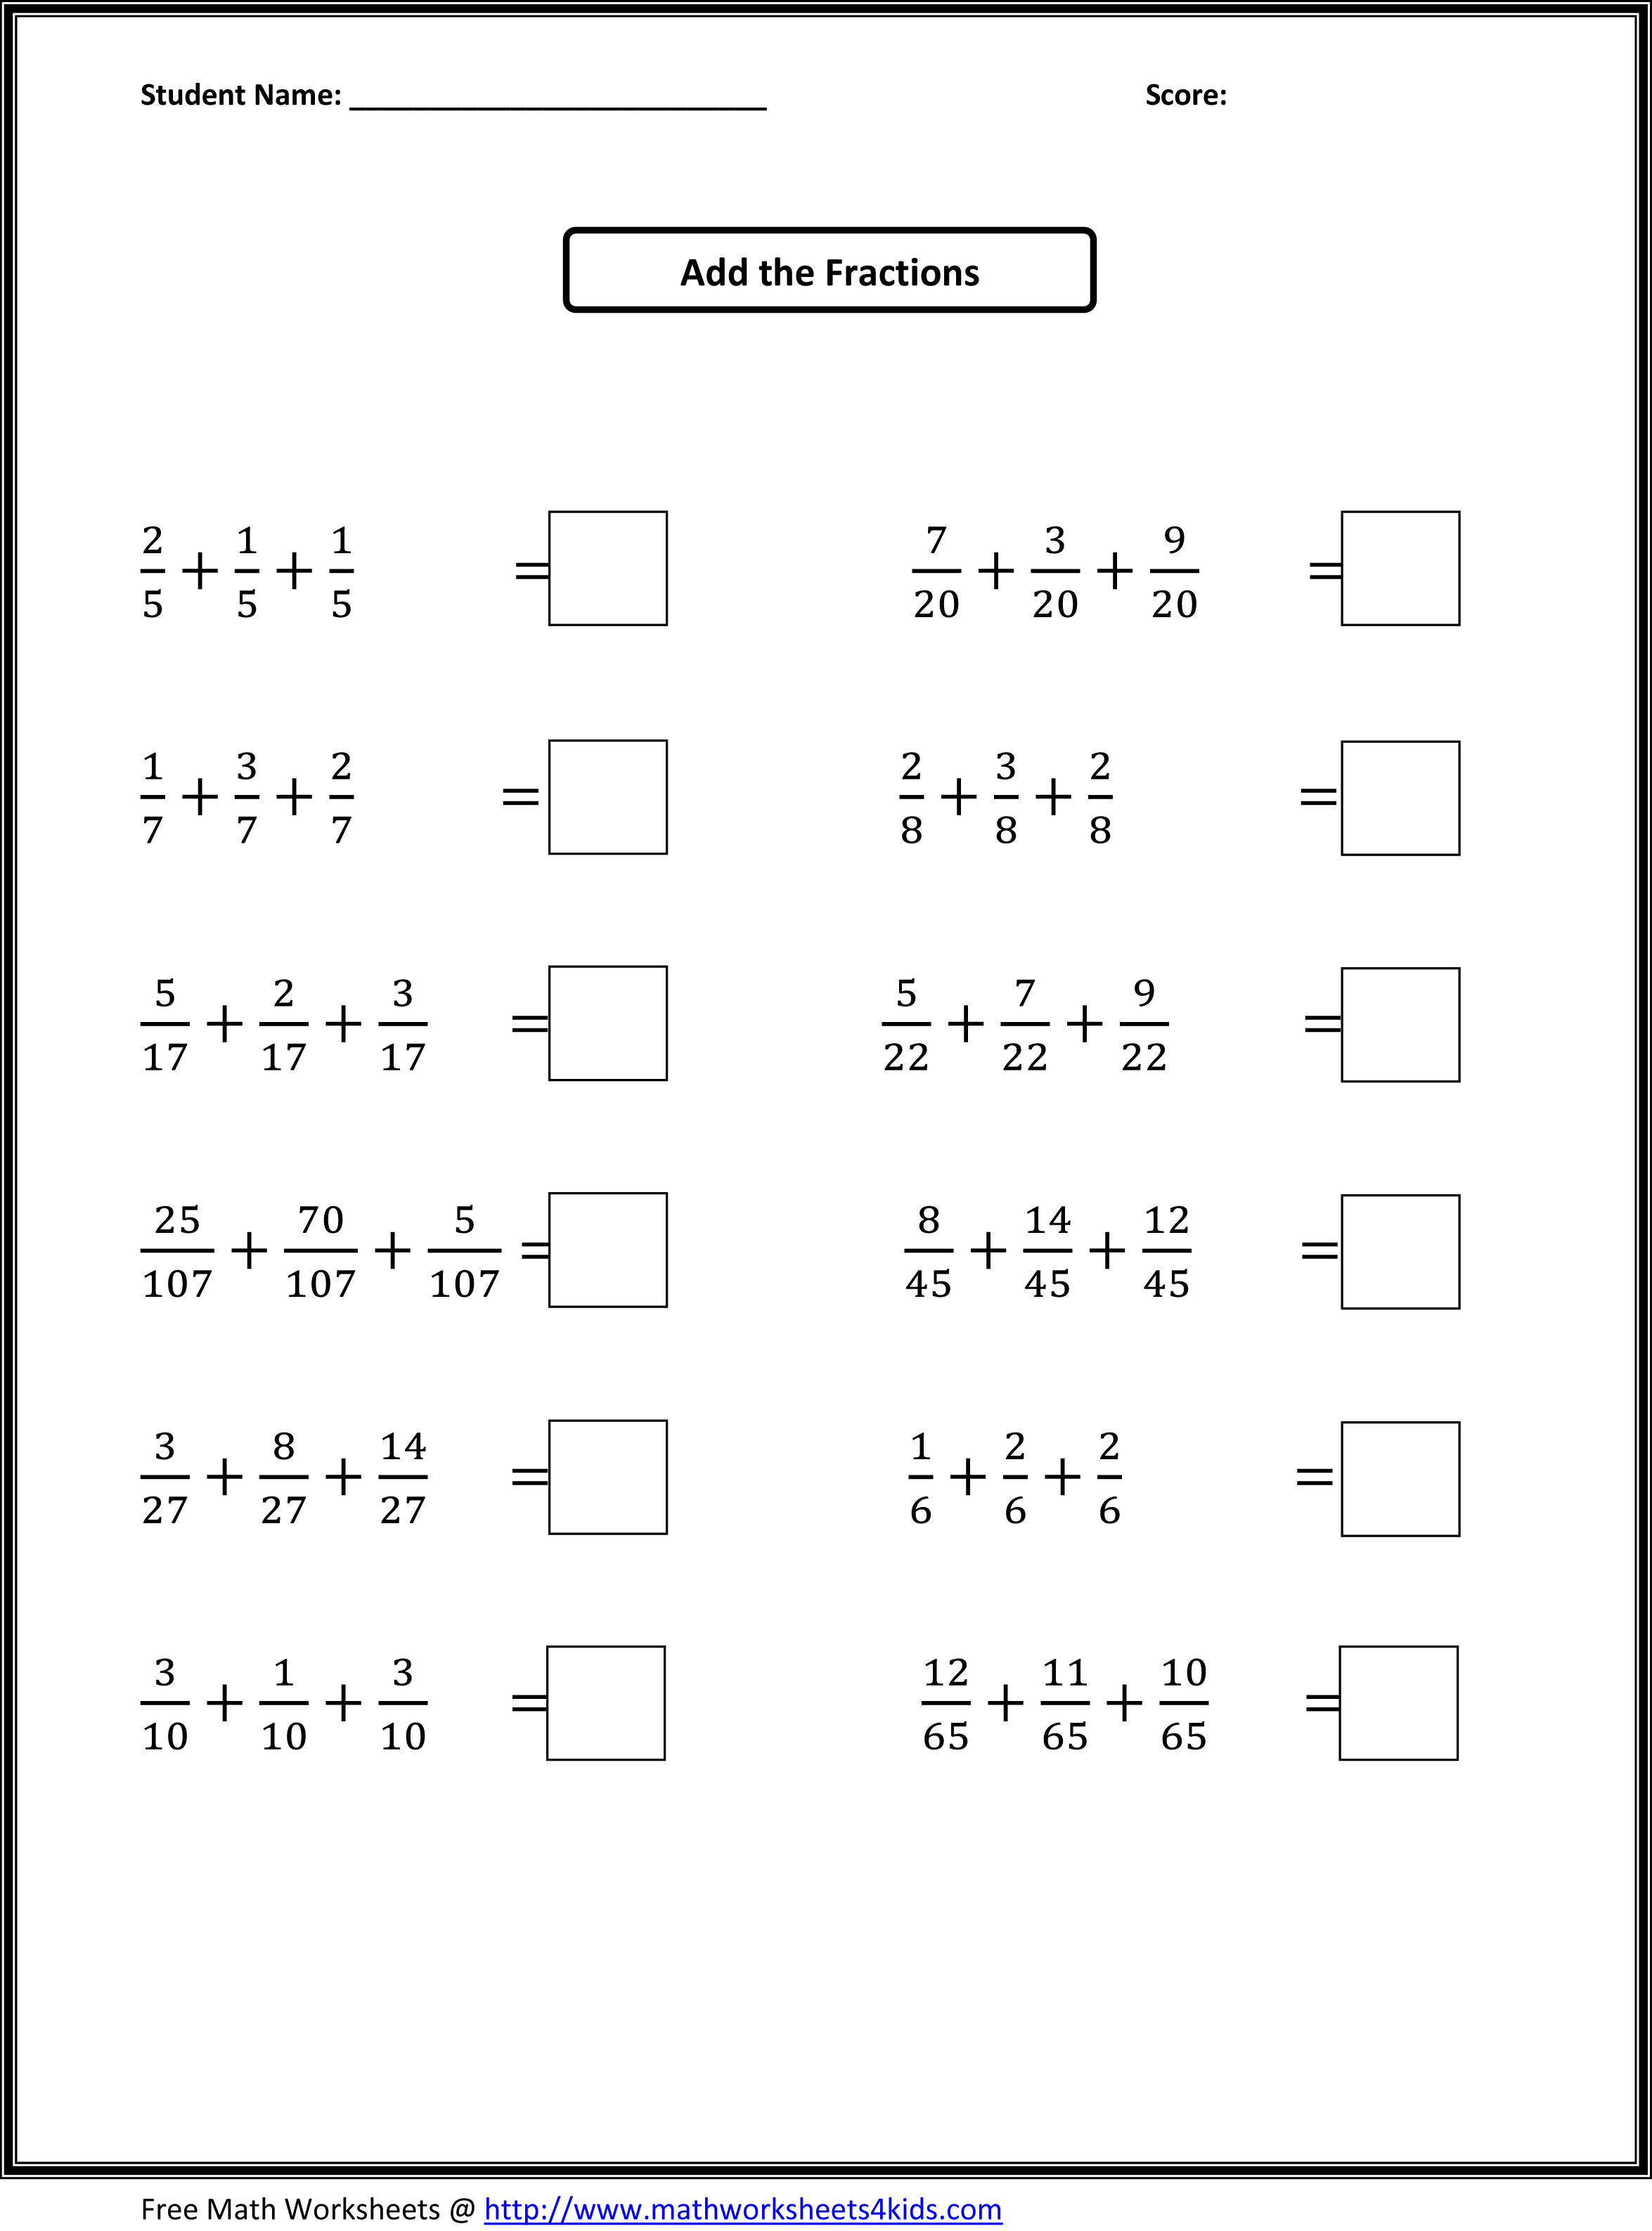 Worksheet 4th Grade Maths Worksheets math worksheets for 4th grade multiplying fractions sviolett com kids activities